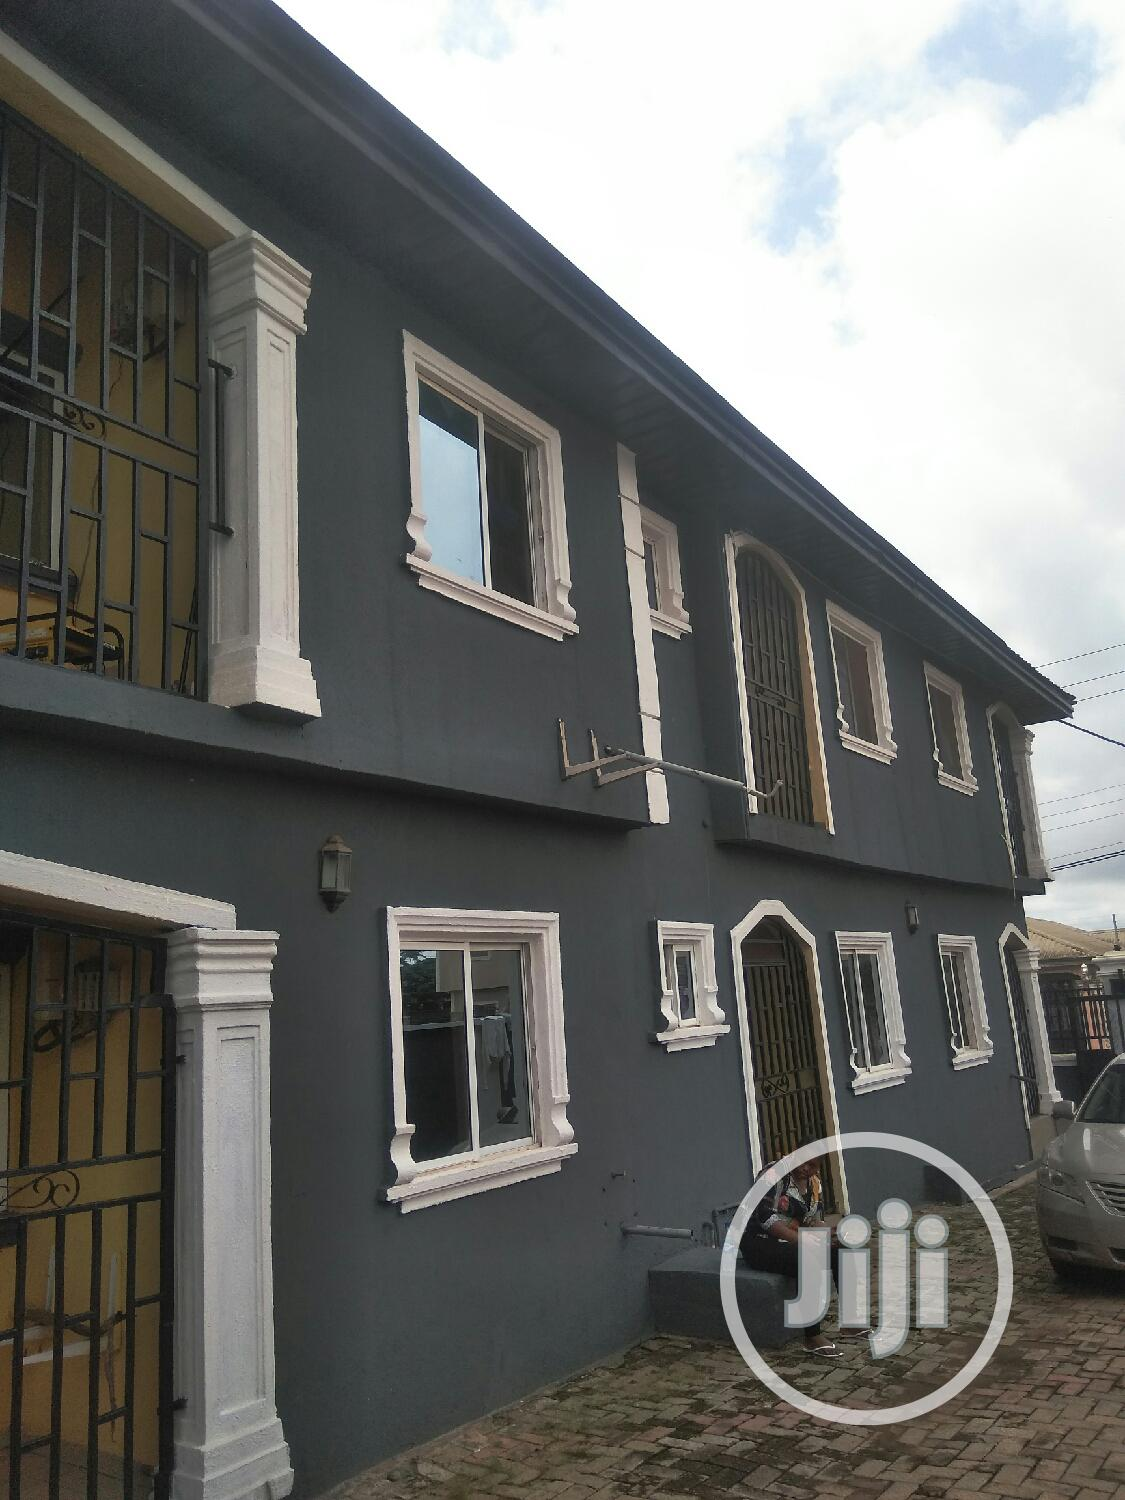 3 Bedroom Flat To Let No Landkord In Compound Pay N Move In